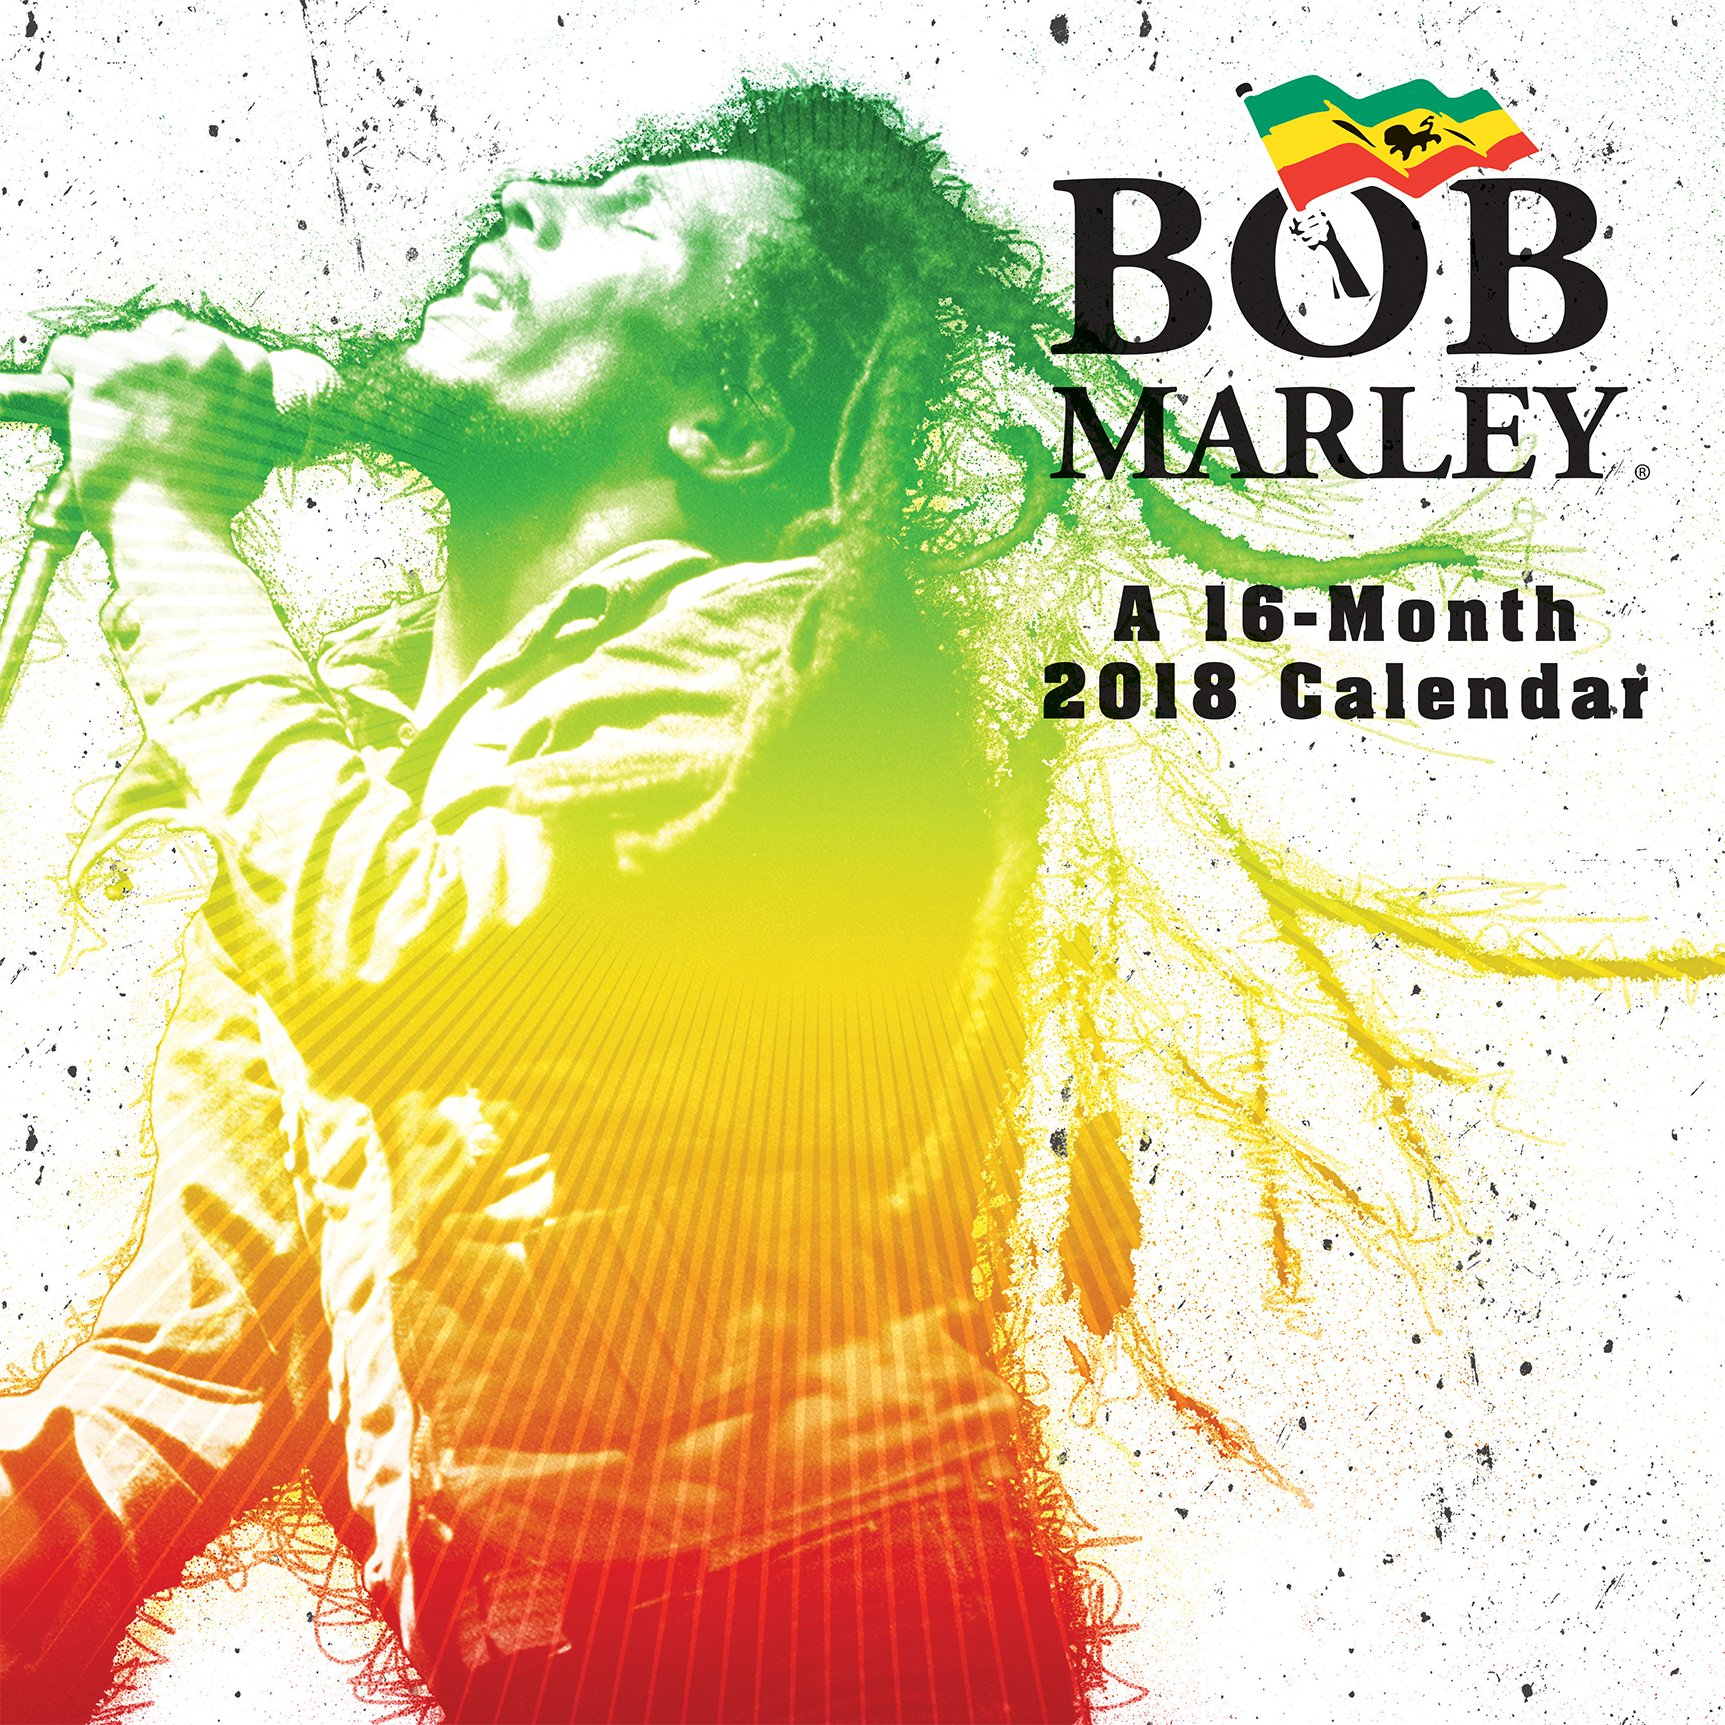 bob marley 2018 wall calendar trends international 9781438852638 amazoncom books